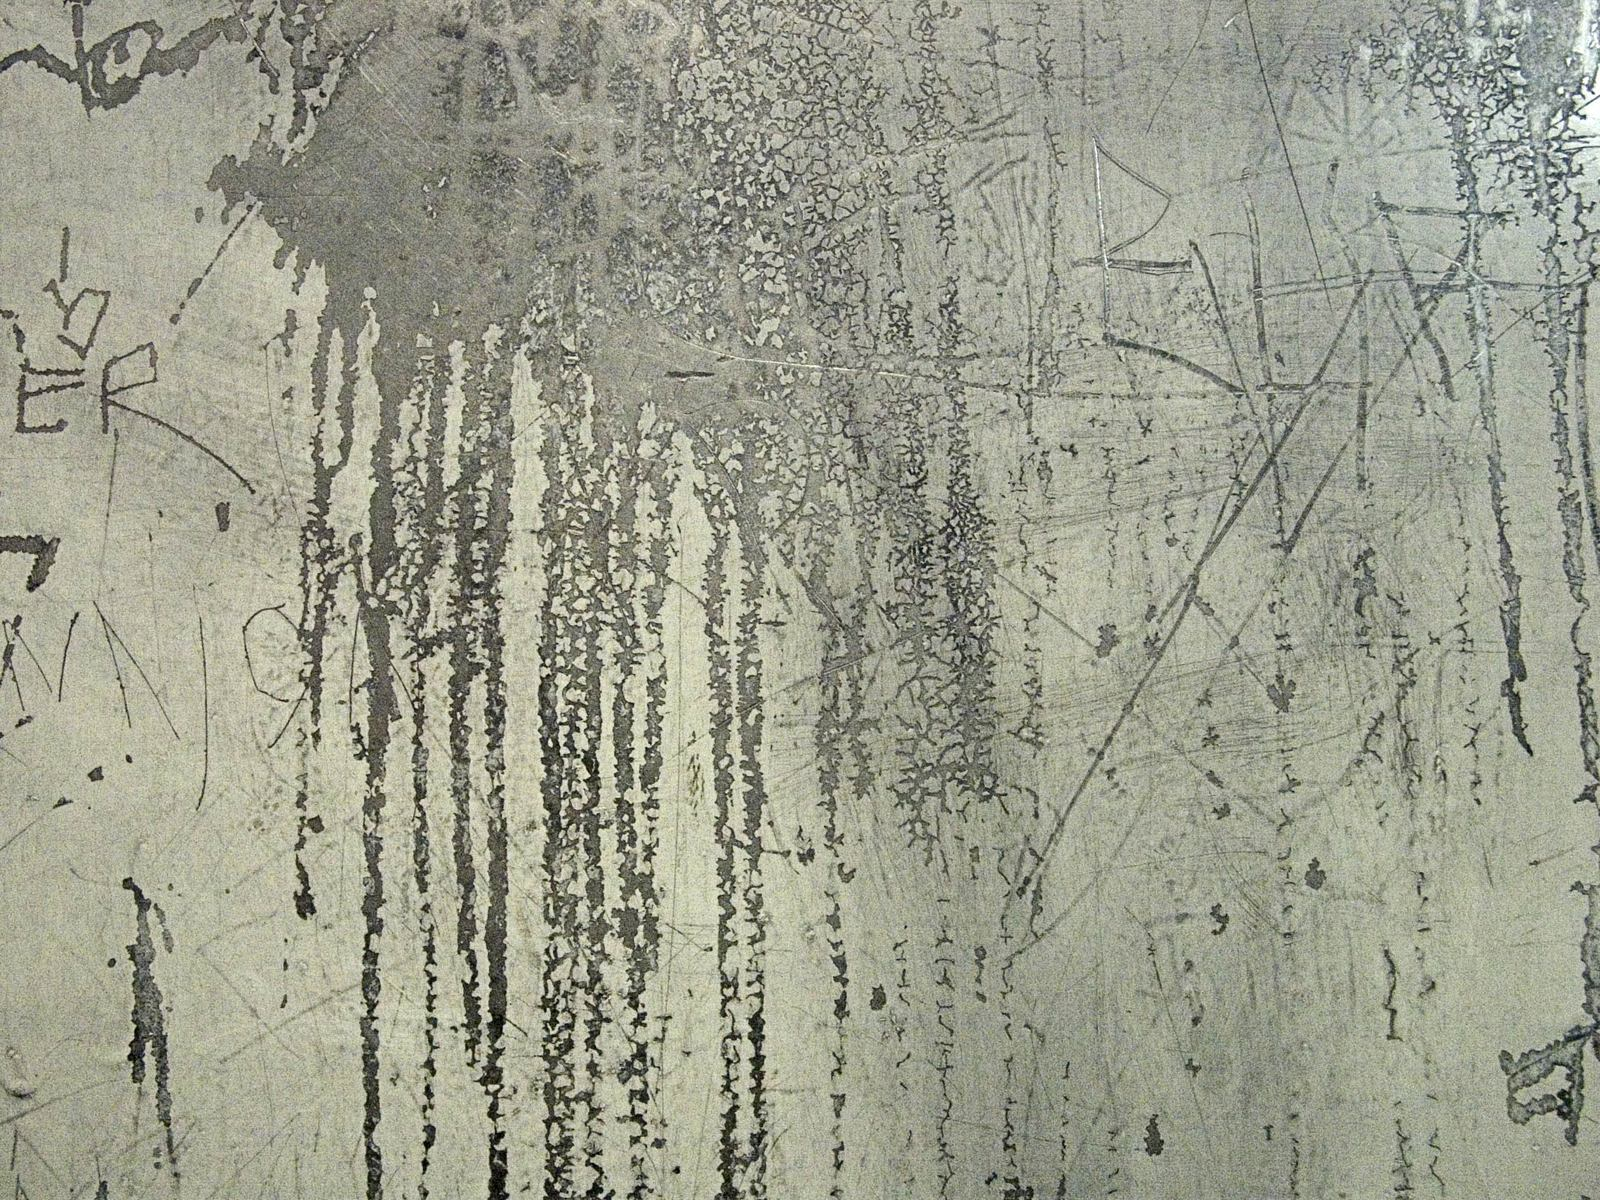 Free another grunge texture Stock Photo - FreeImages.com